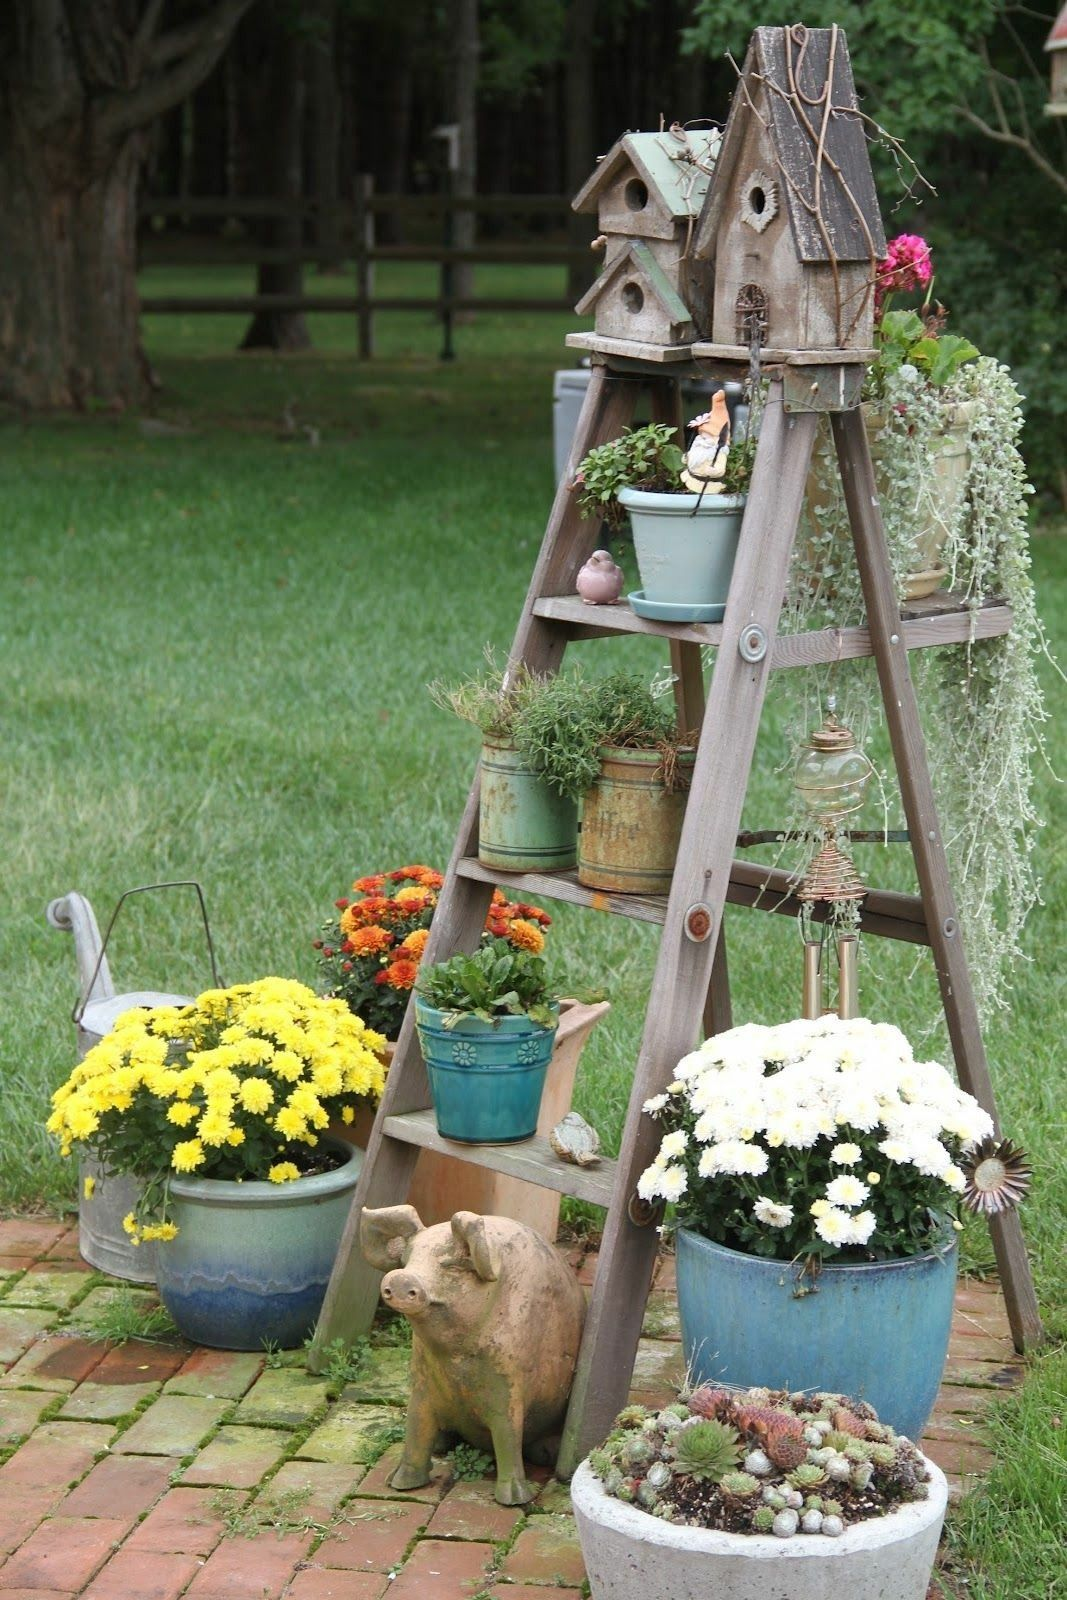 Garden decorating ideas on a budget to make by yourself using old ...